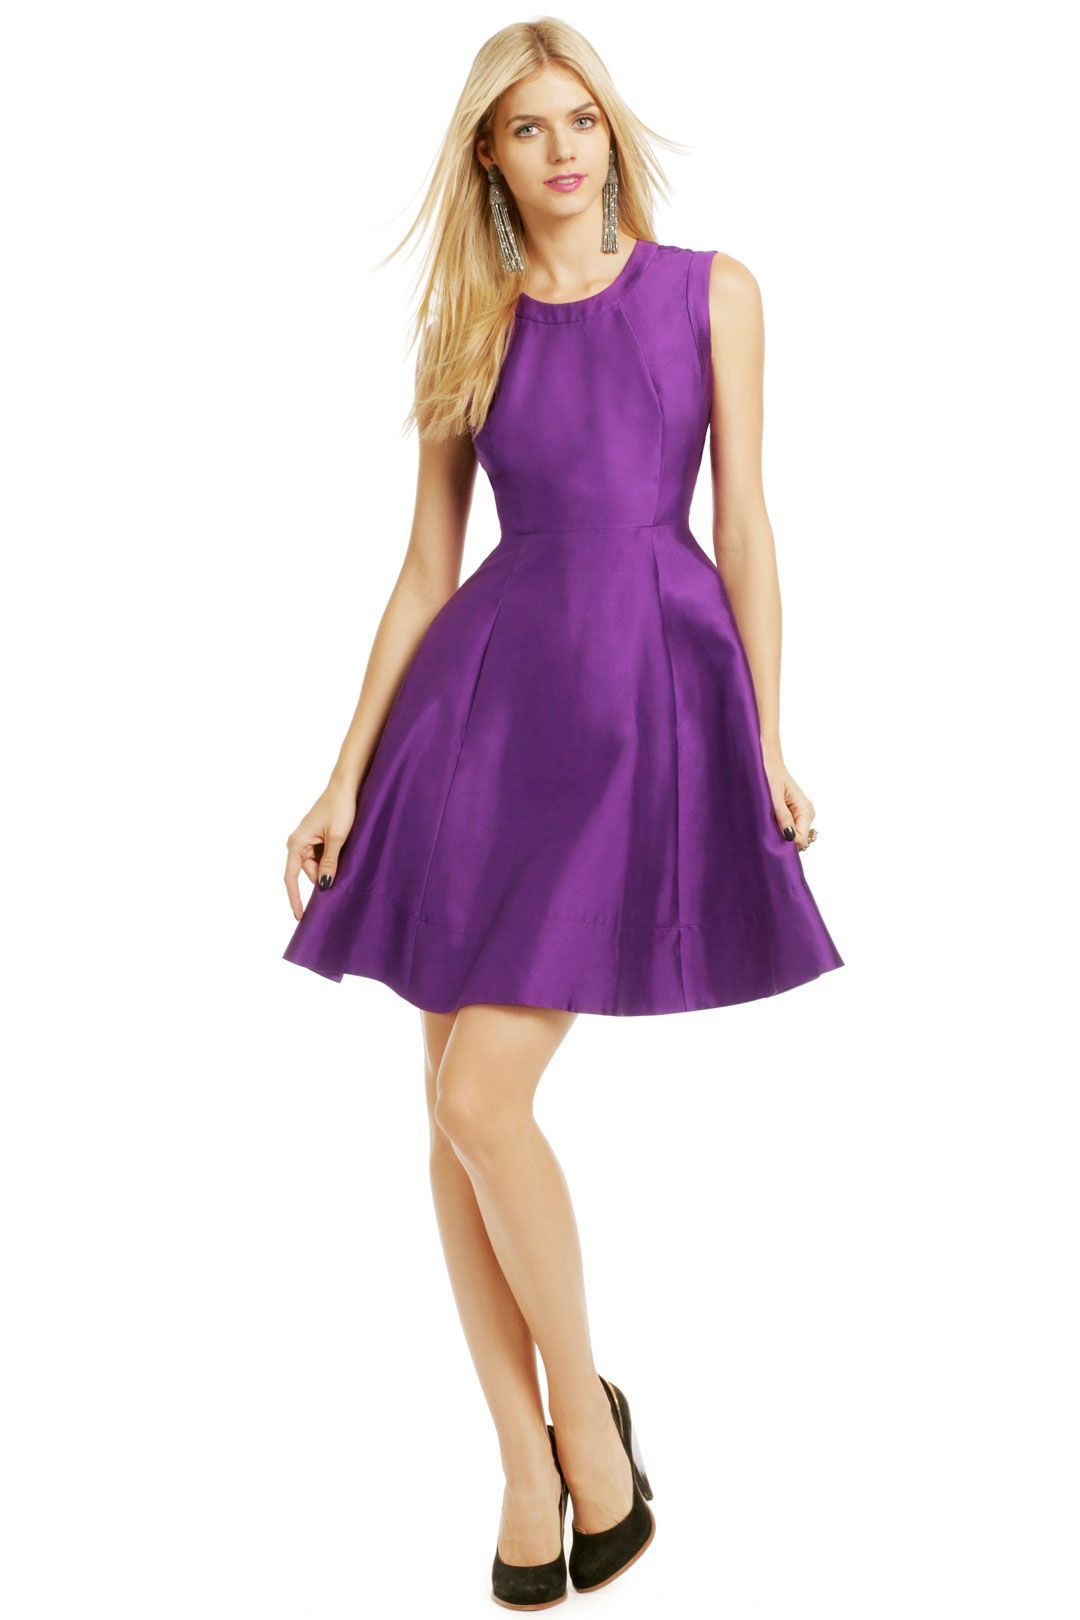 61f309f3db5 Grape Soda Pop Dress by kate spade new york  75 to rent from renttherunway!